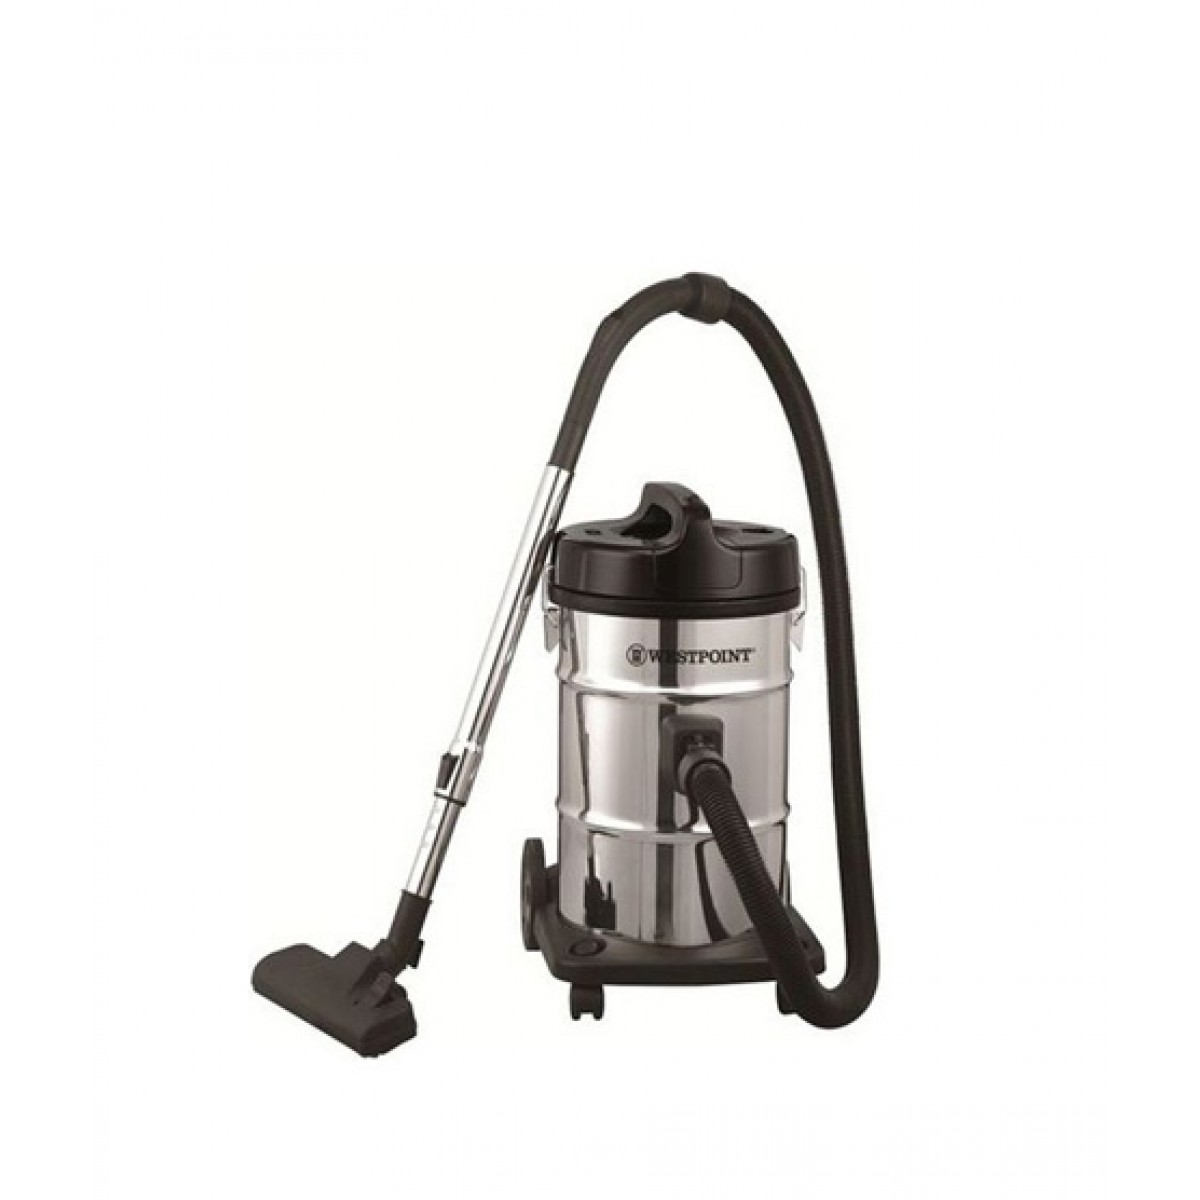 Image result for WestPoint Vacuum Cleaner WF-970